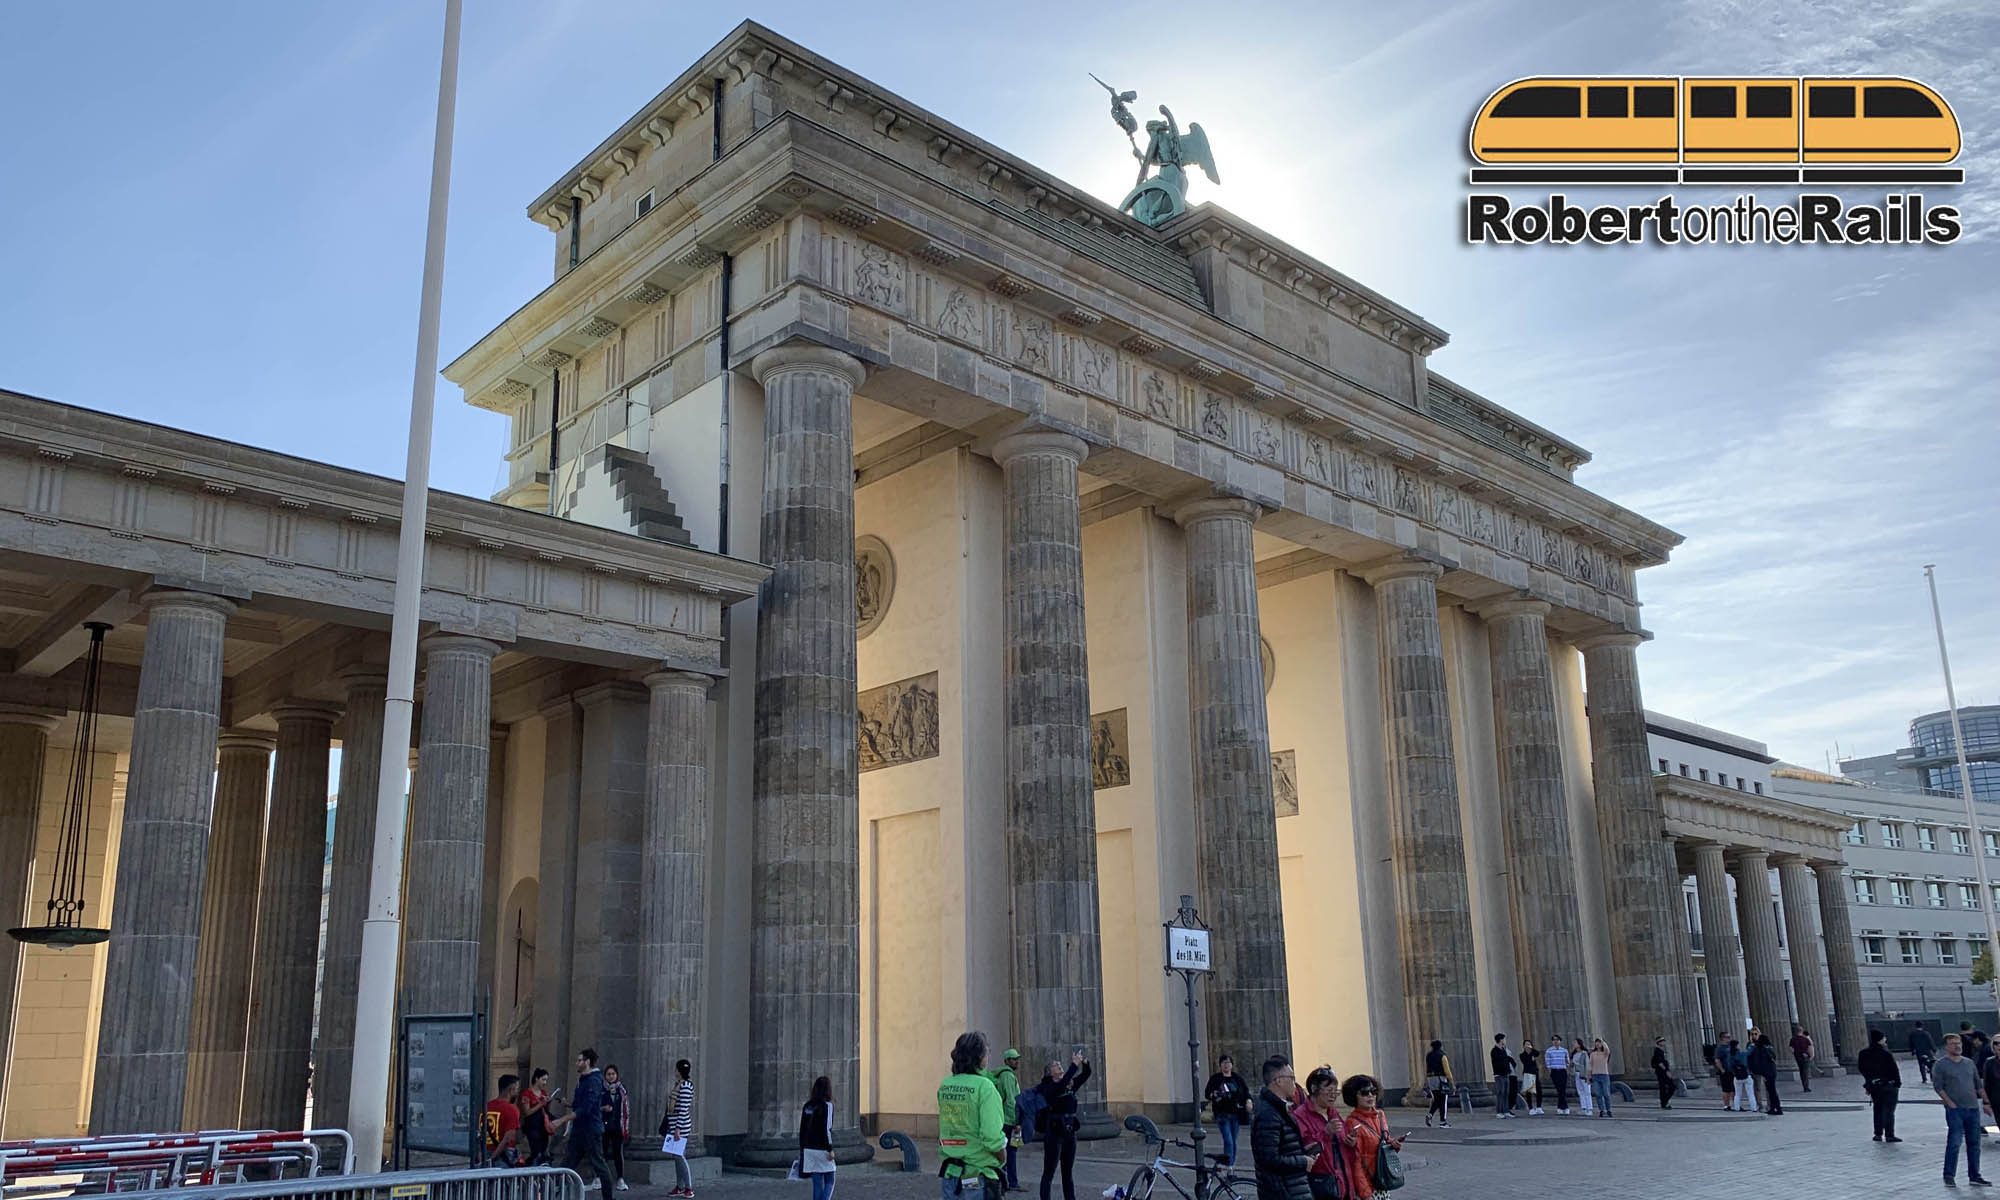 London to Prague [via Berlin] on the Imperial Cities & Danube Cruise tour